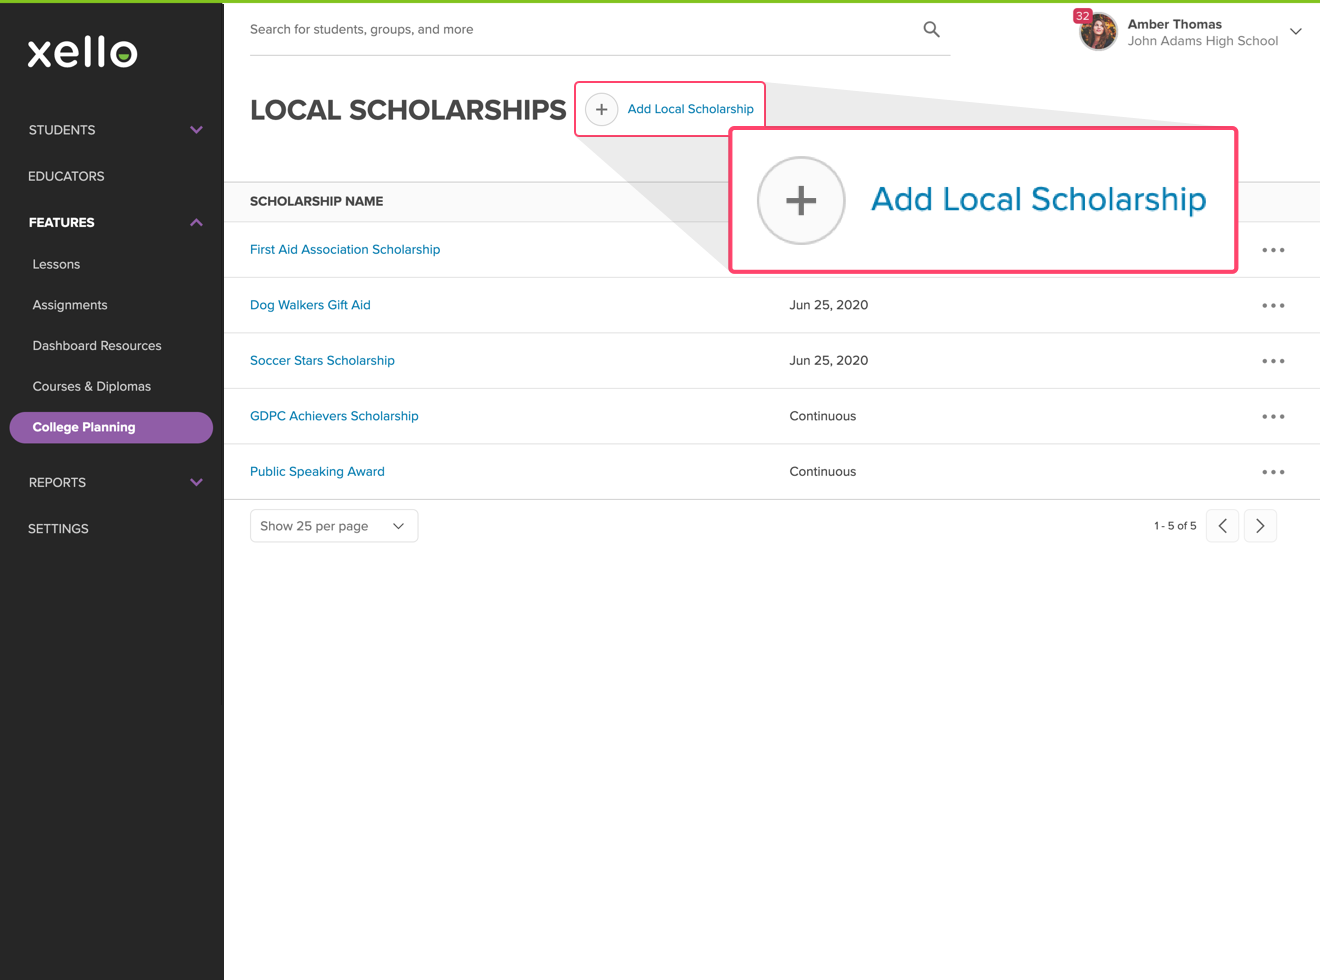 Local-Scholarships-and-link-to-add